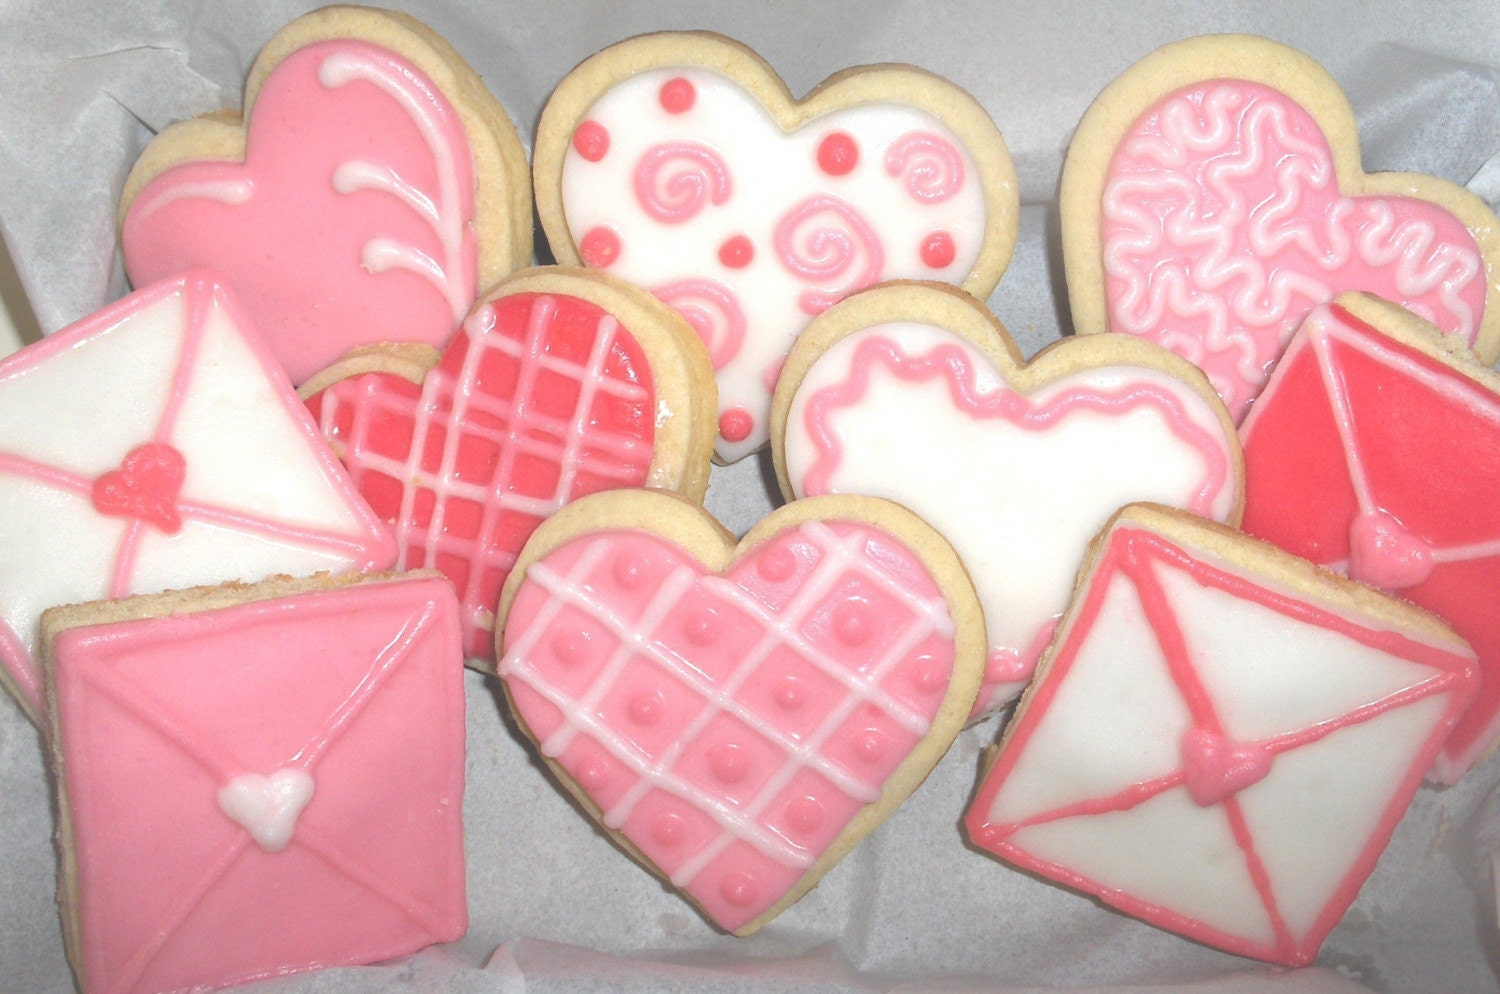 VALENTINE COOKIES-Decorated sugar cookie with rich Buttercream frosting-Hearts and letters